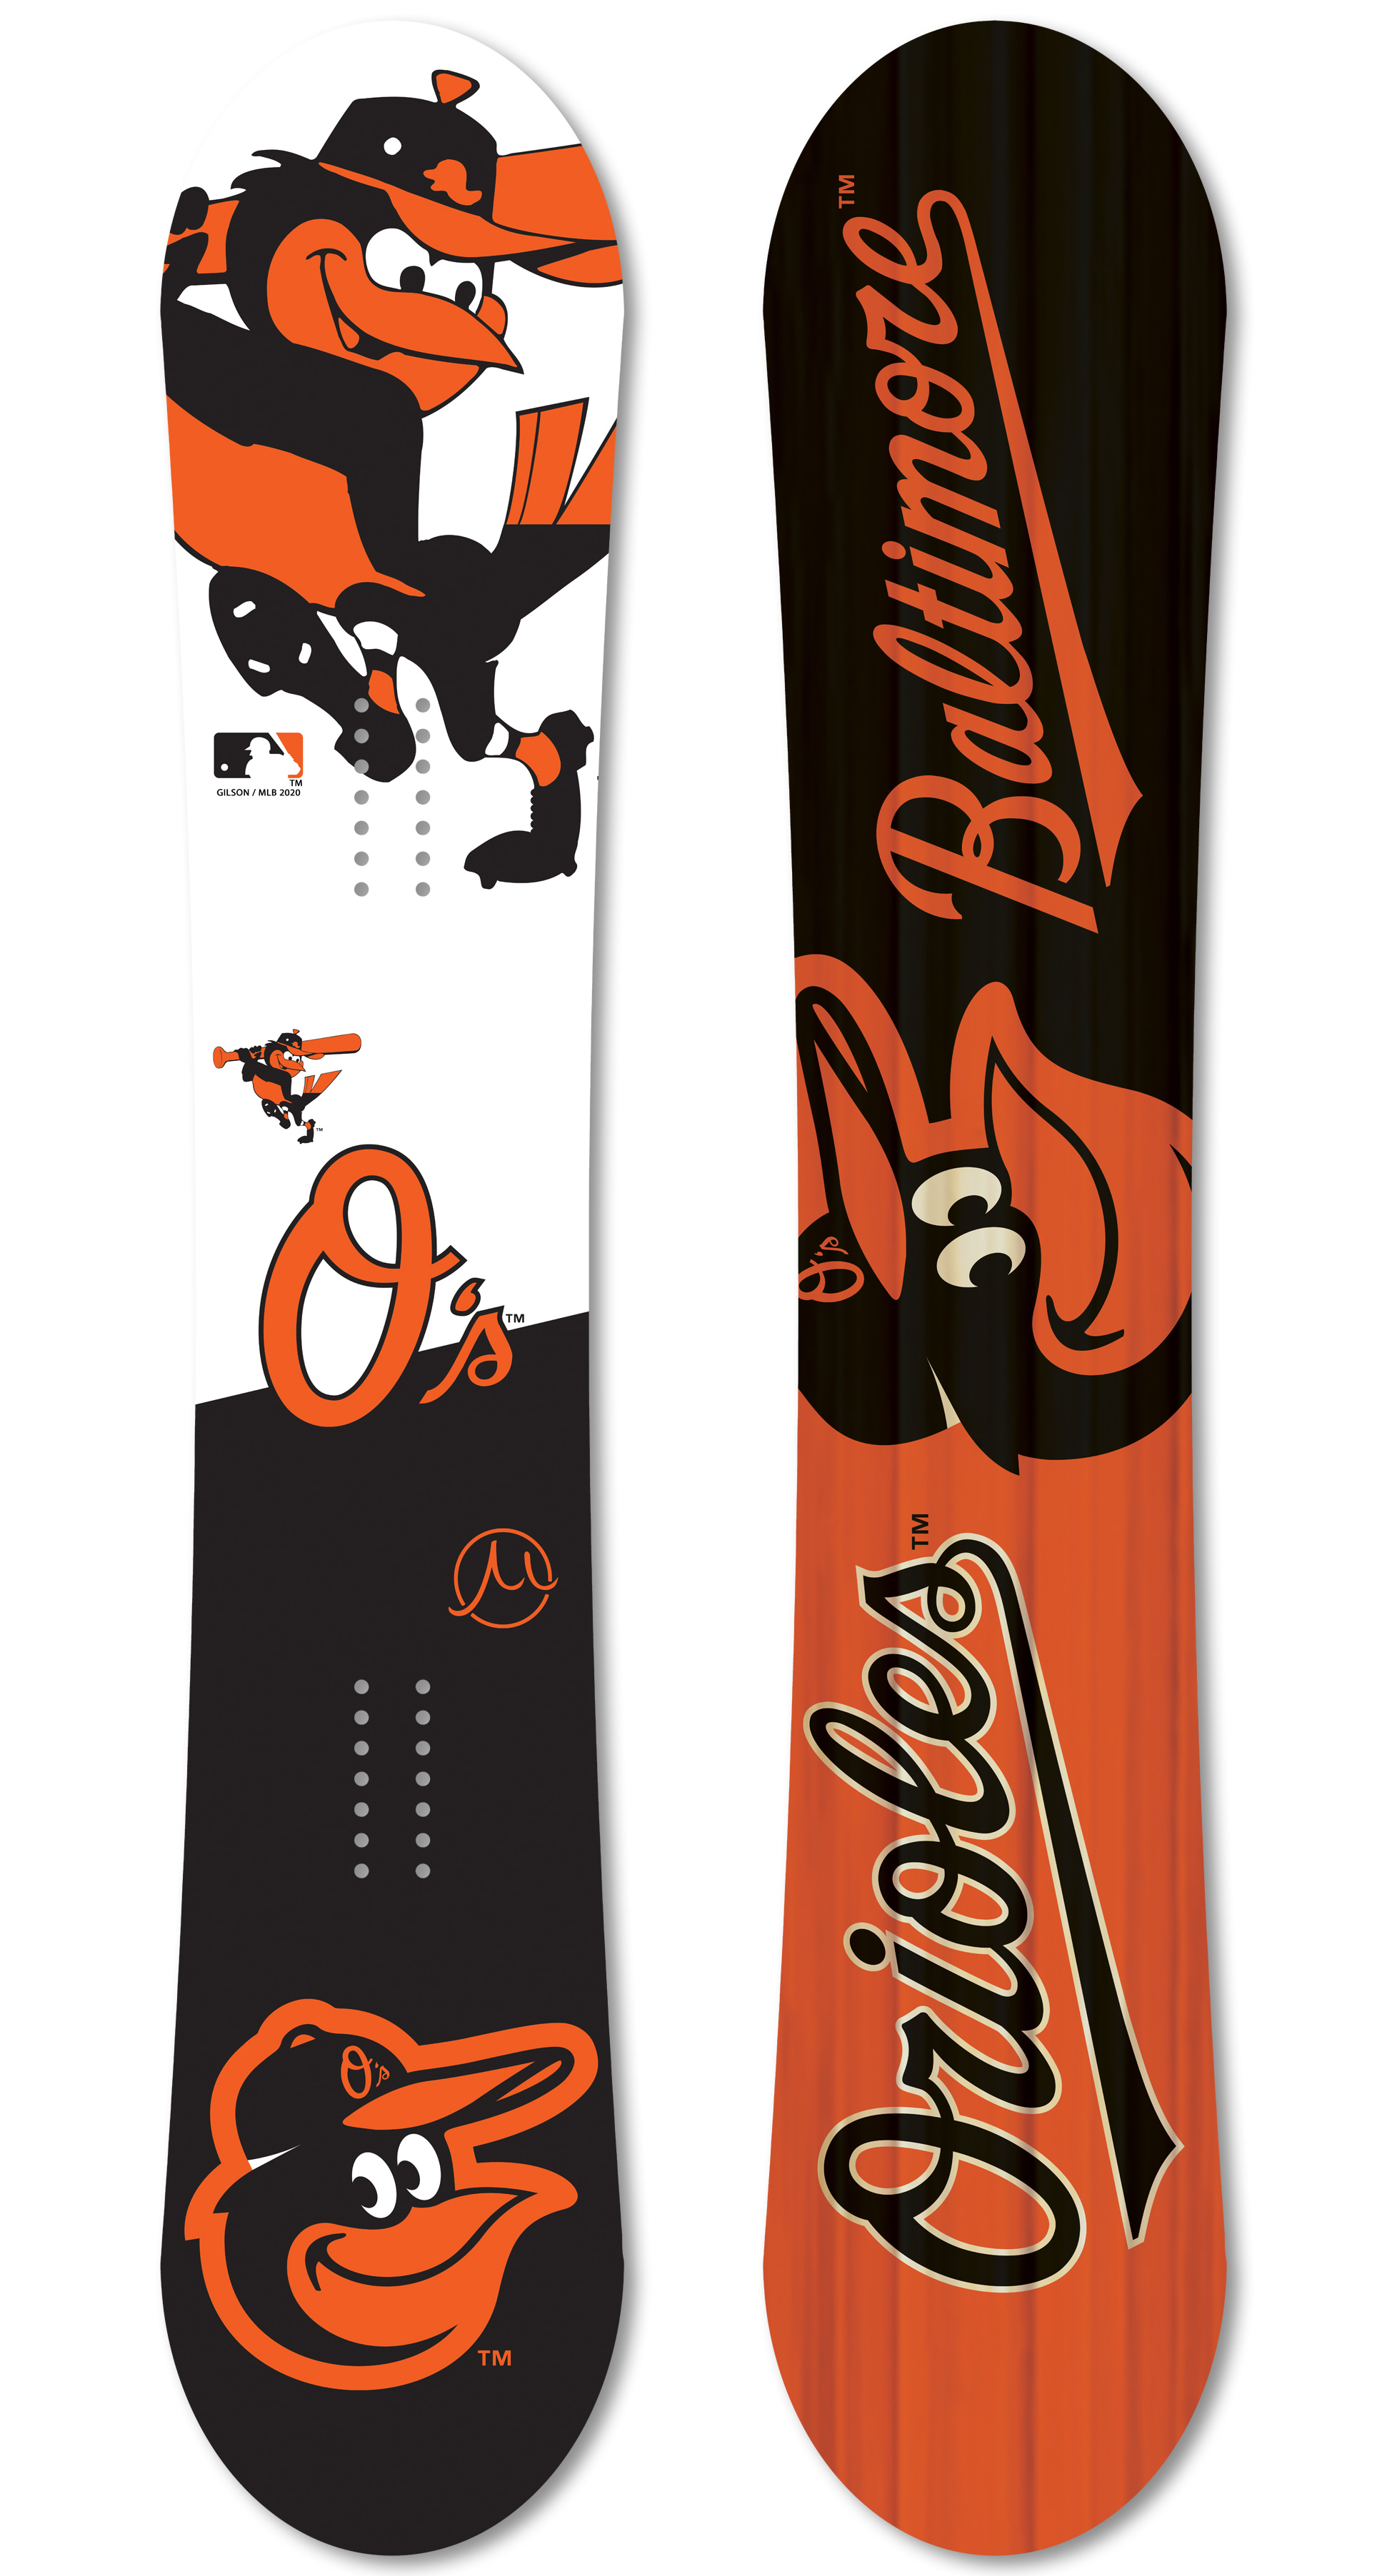 Mlb baltimore orioles large